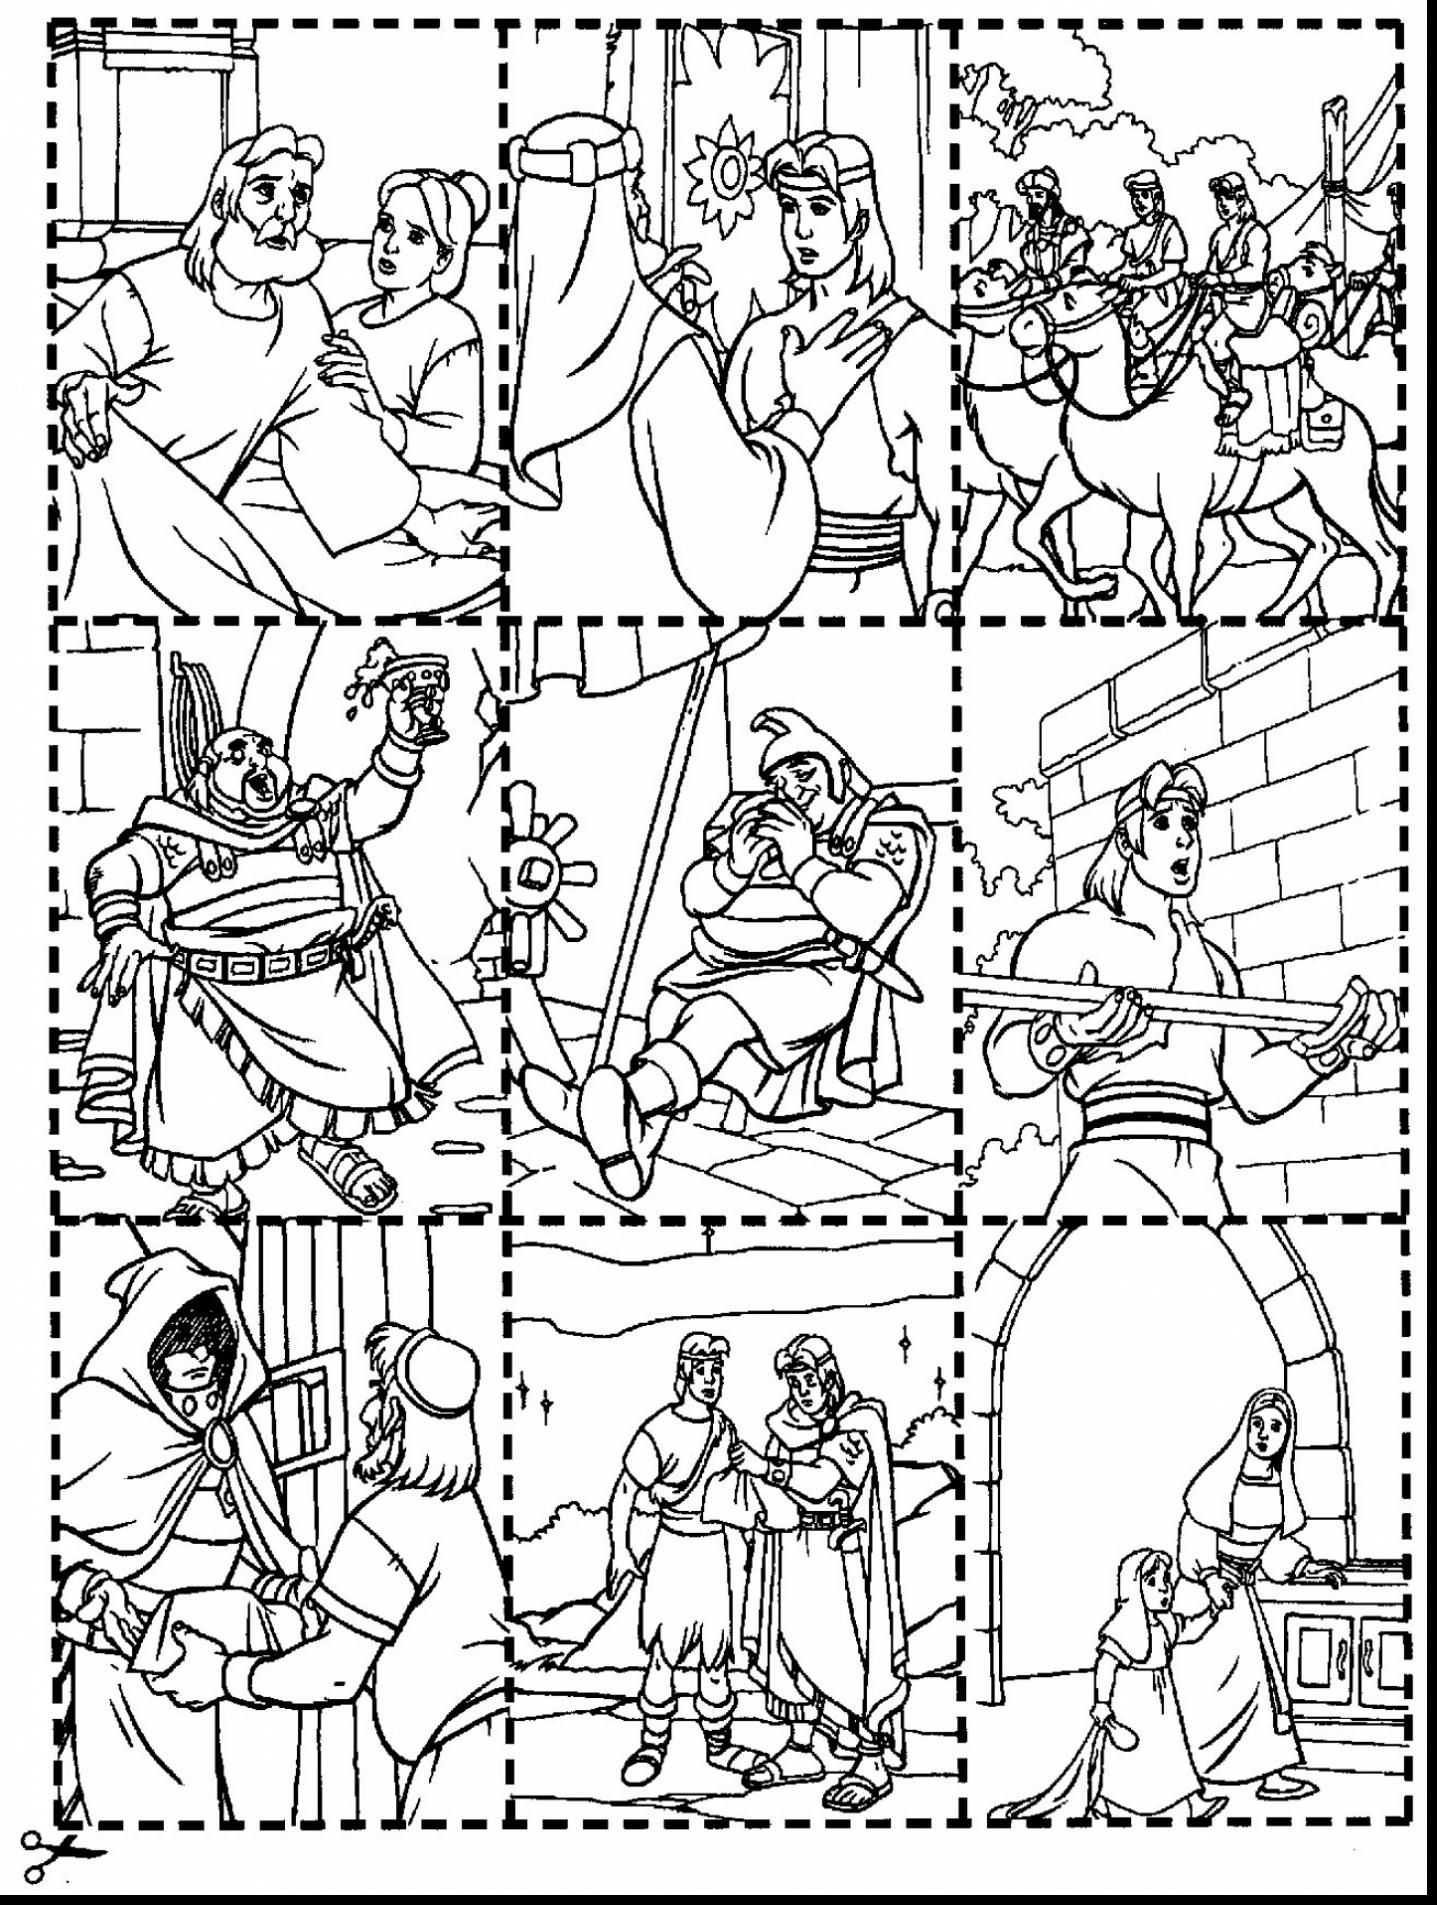 Good Lds Nephi And The Brass Plates Coloring Pages With Book Of Mormon PagesFhe LessonsBook